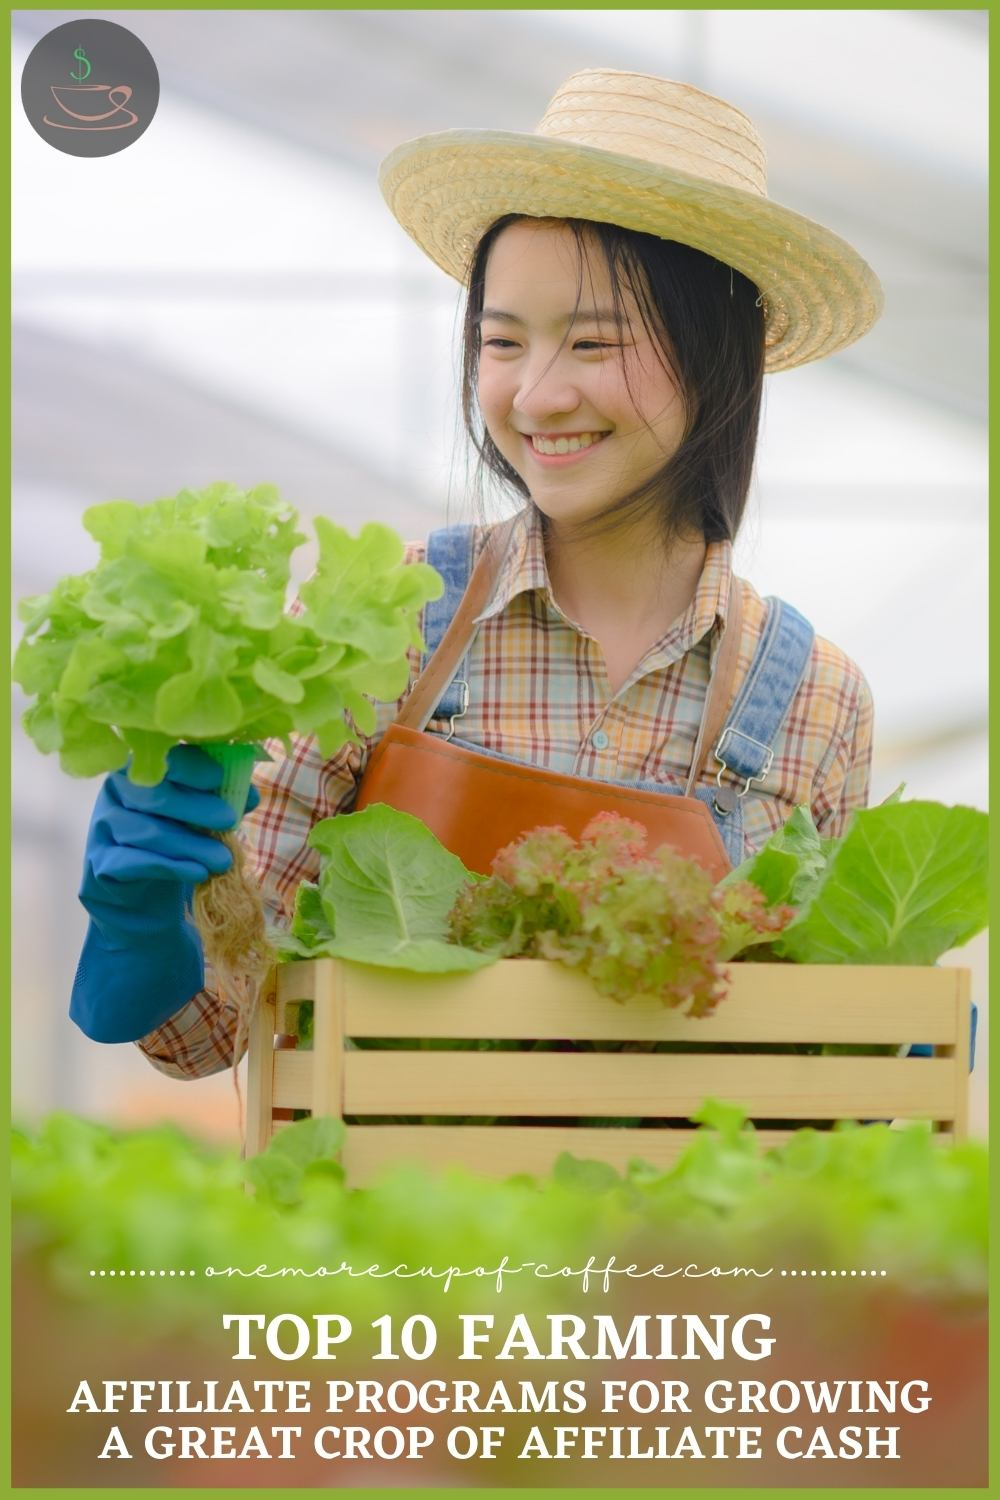 """young Asian girl holding fresh harvest and a crate full of greens; with text overlay """"Top 10 Farming Affiliate Programs For Growing A Great Crop Of Affiliate Cash"""""""